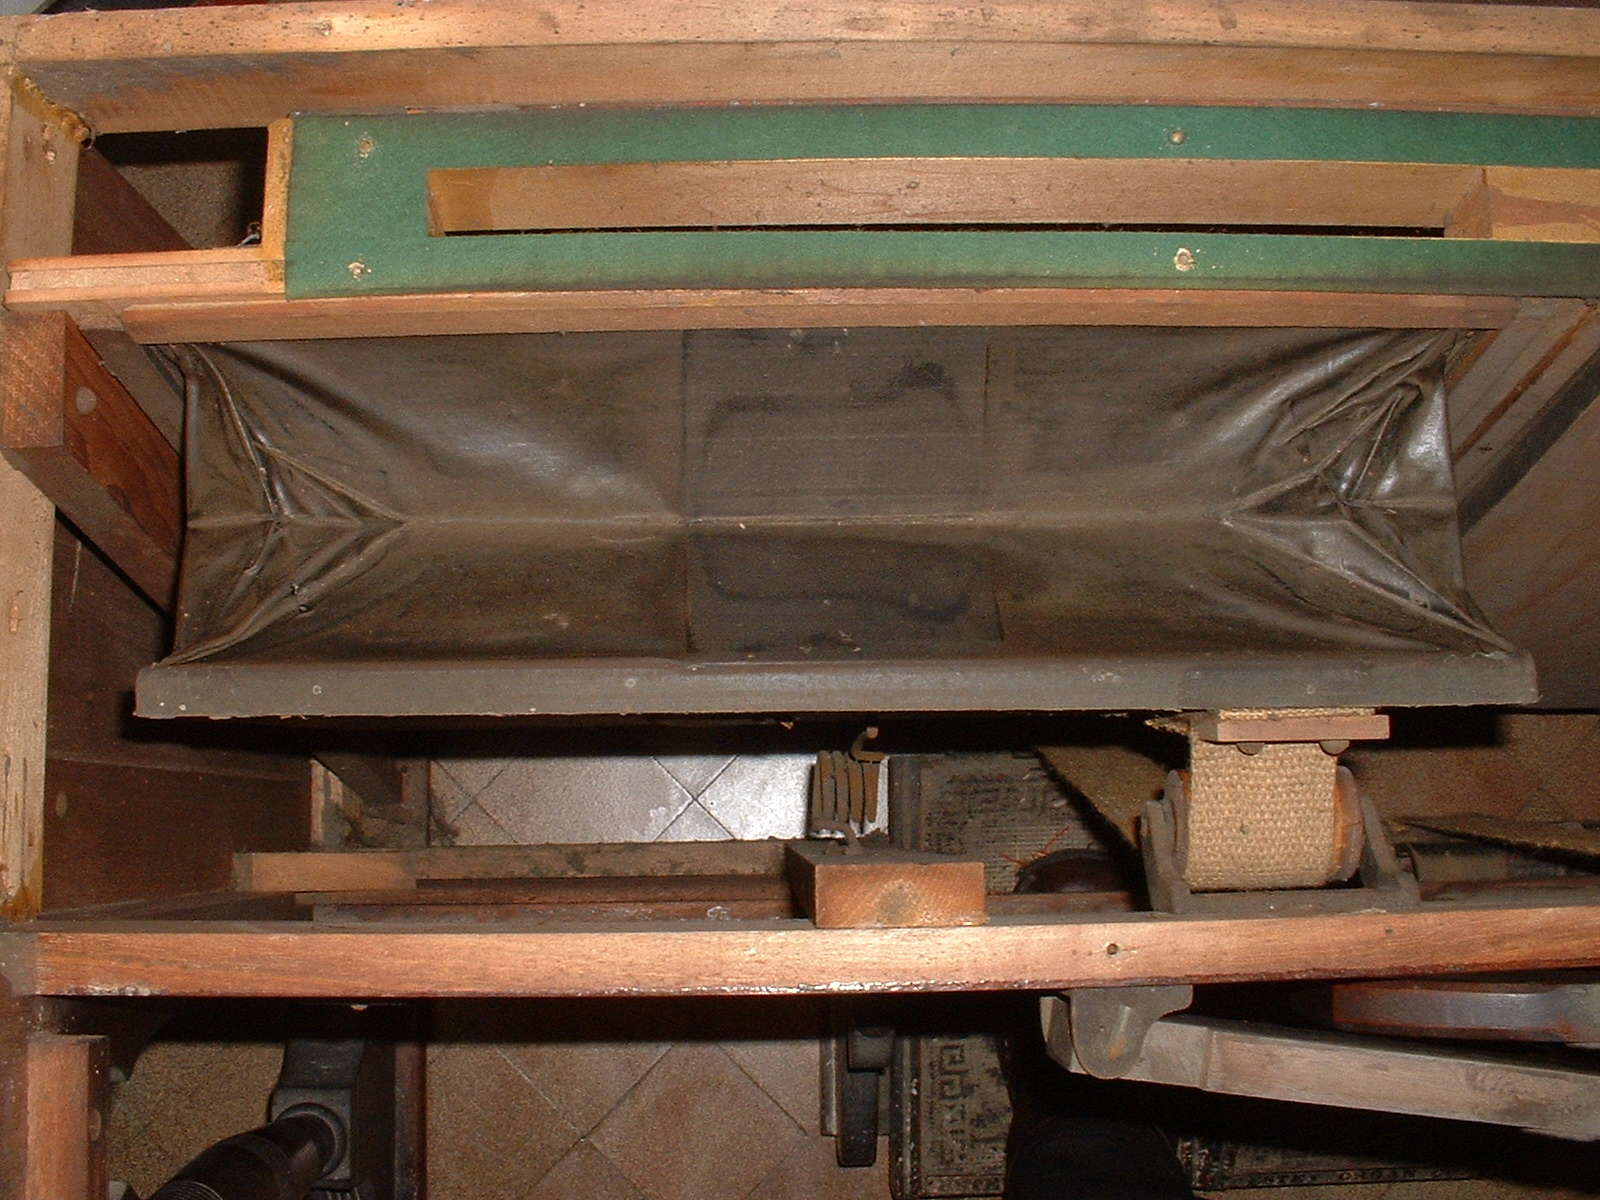 Left exhauster. Note the felt gasket at the top which I replaced with more felt. Today I would replace it with leather.